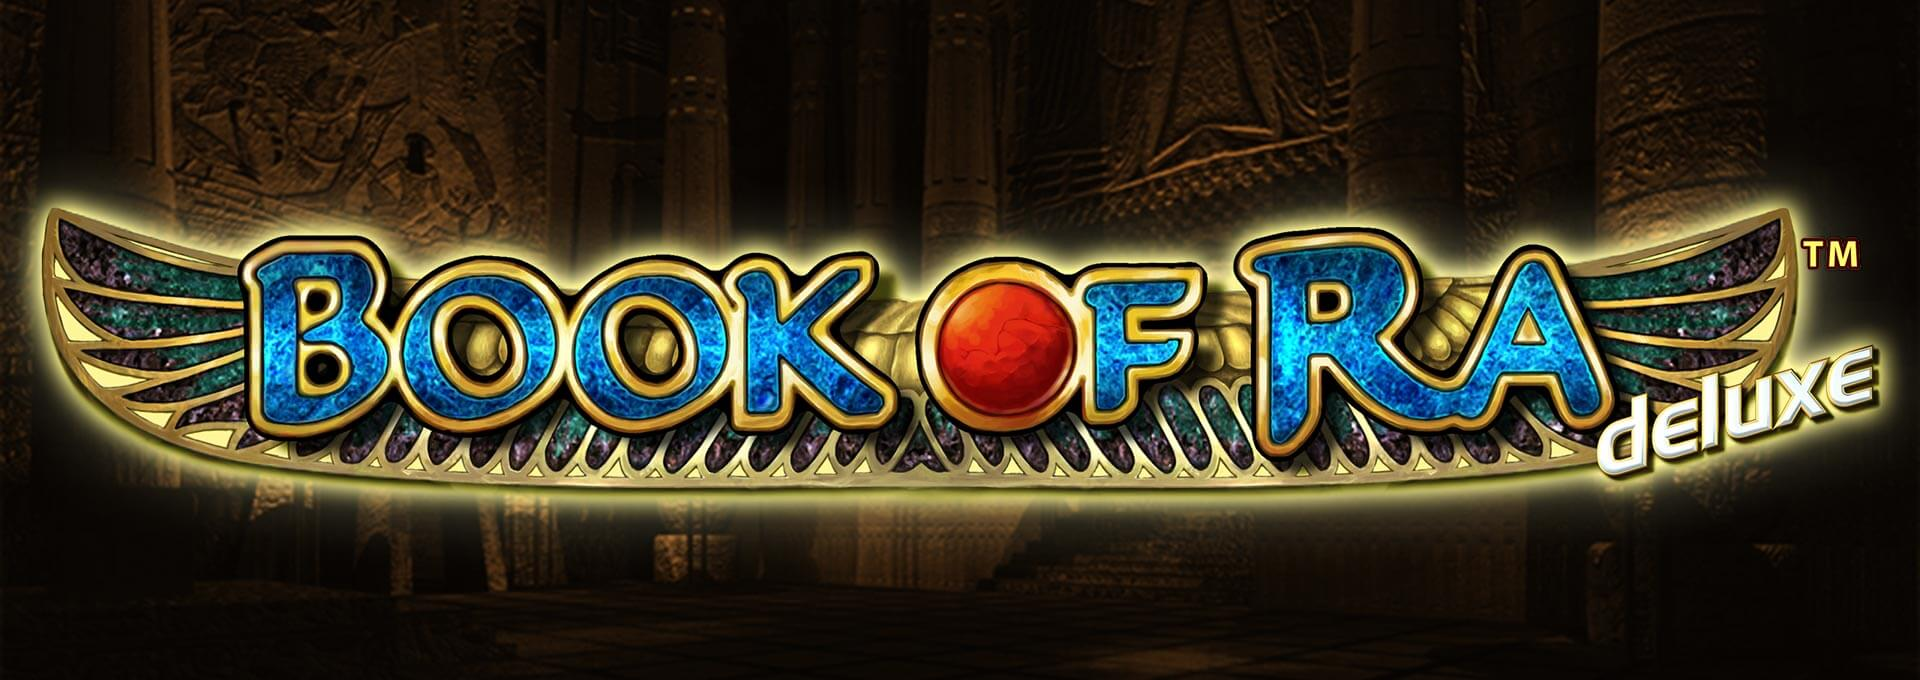 slots online free games book of ra deluxe download